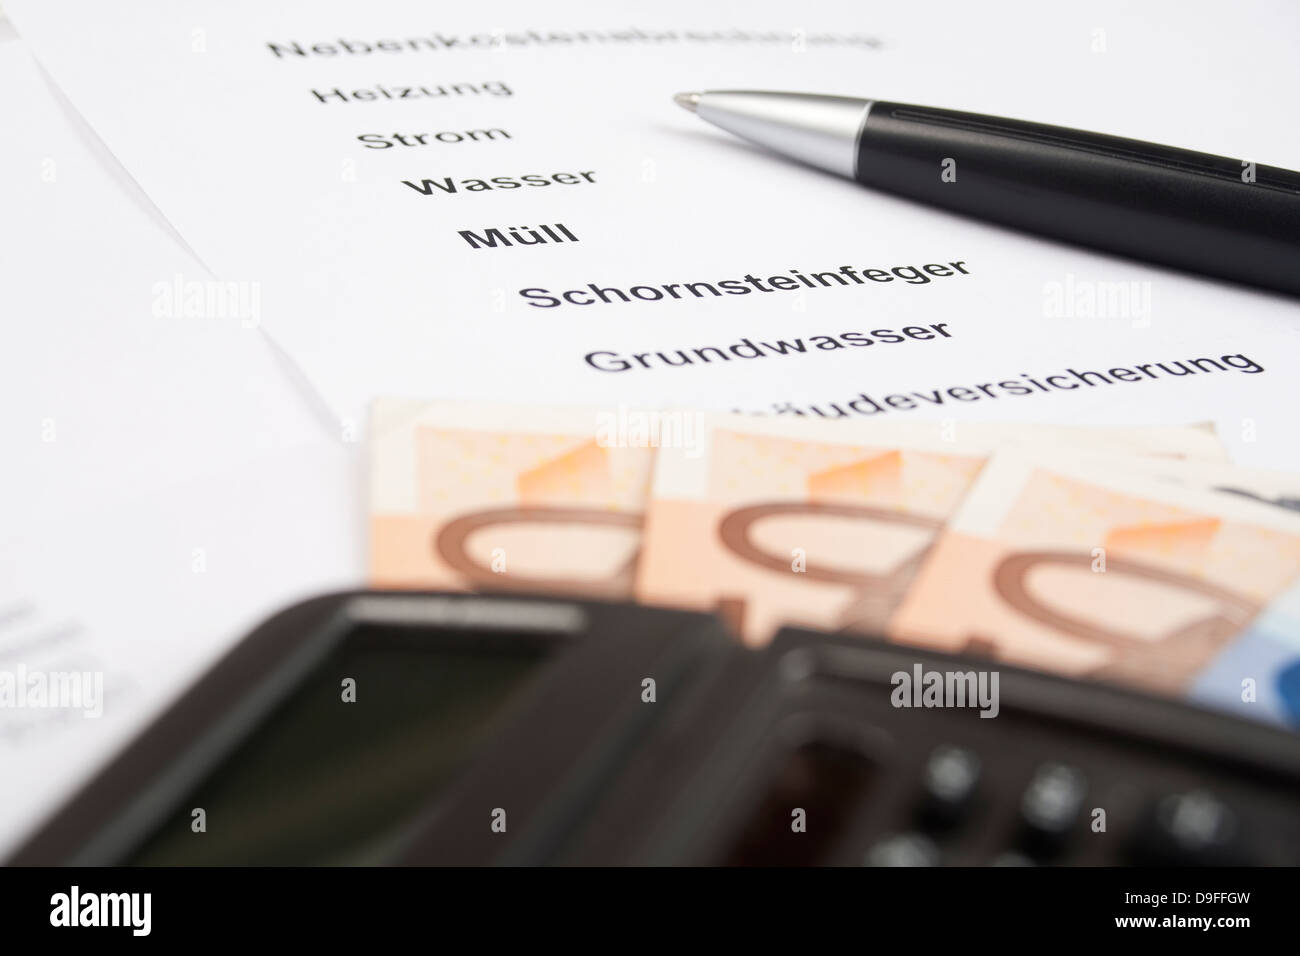 Expenses settlement with ballpoint pen and pocket calculator load settlement with pen and calculator - Stock Image